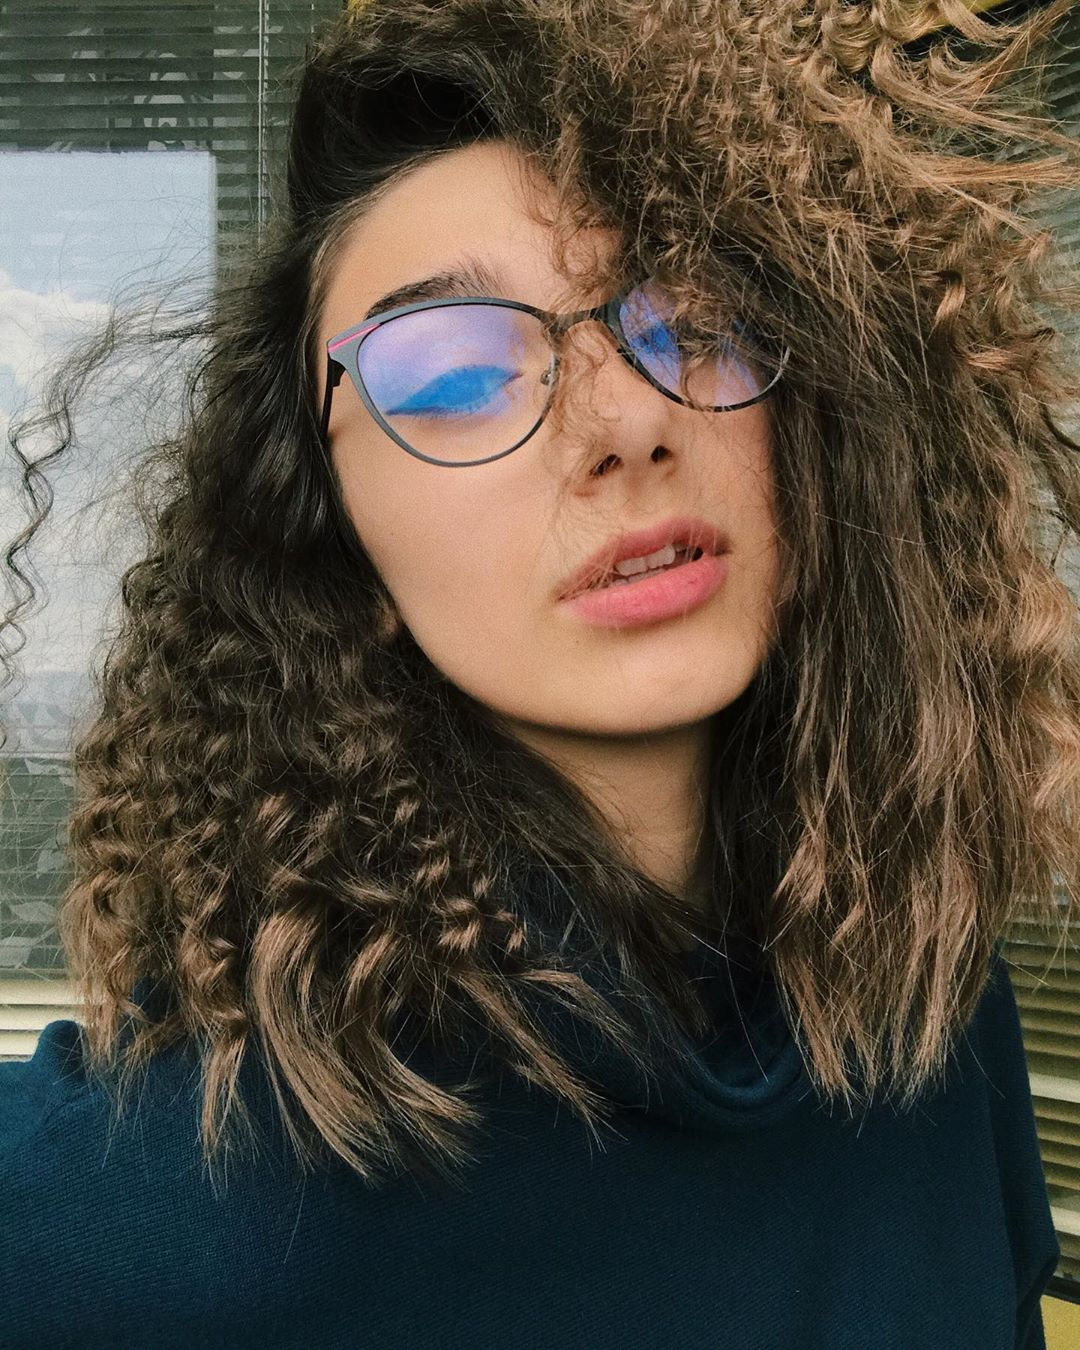 Curly Hair ❤️😗 - - Selfcare Explore Explore - Beauty Tips